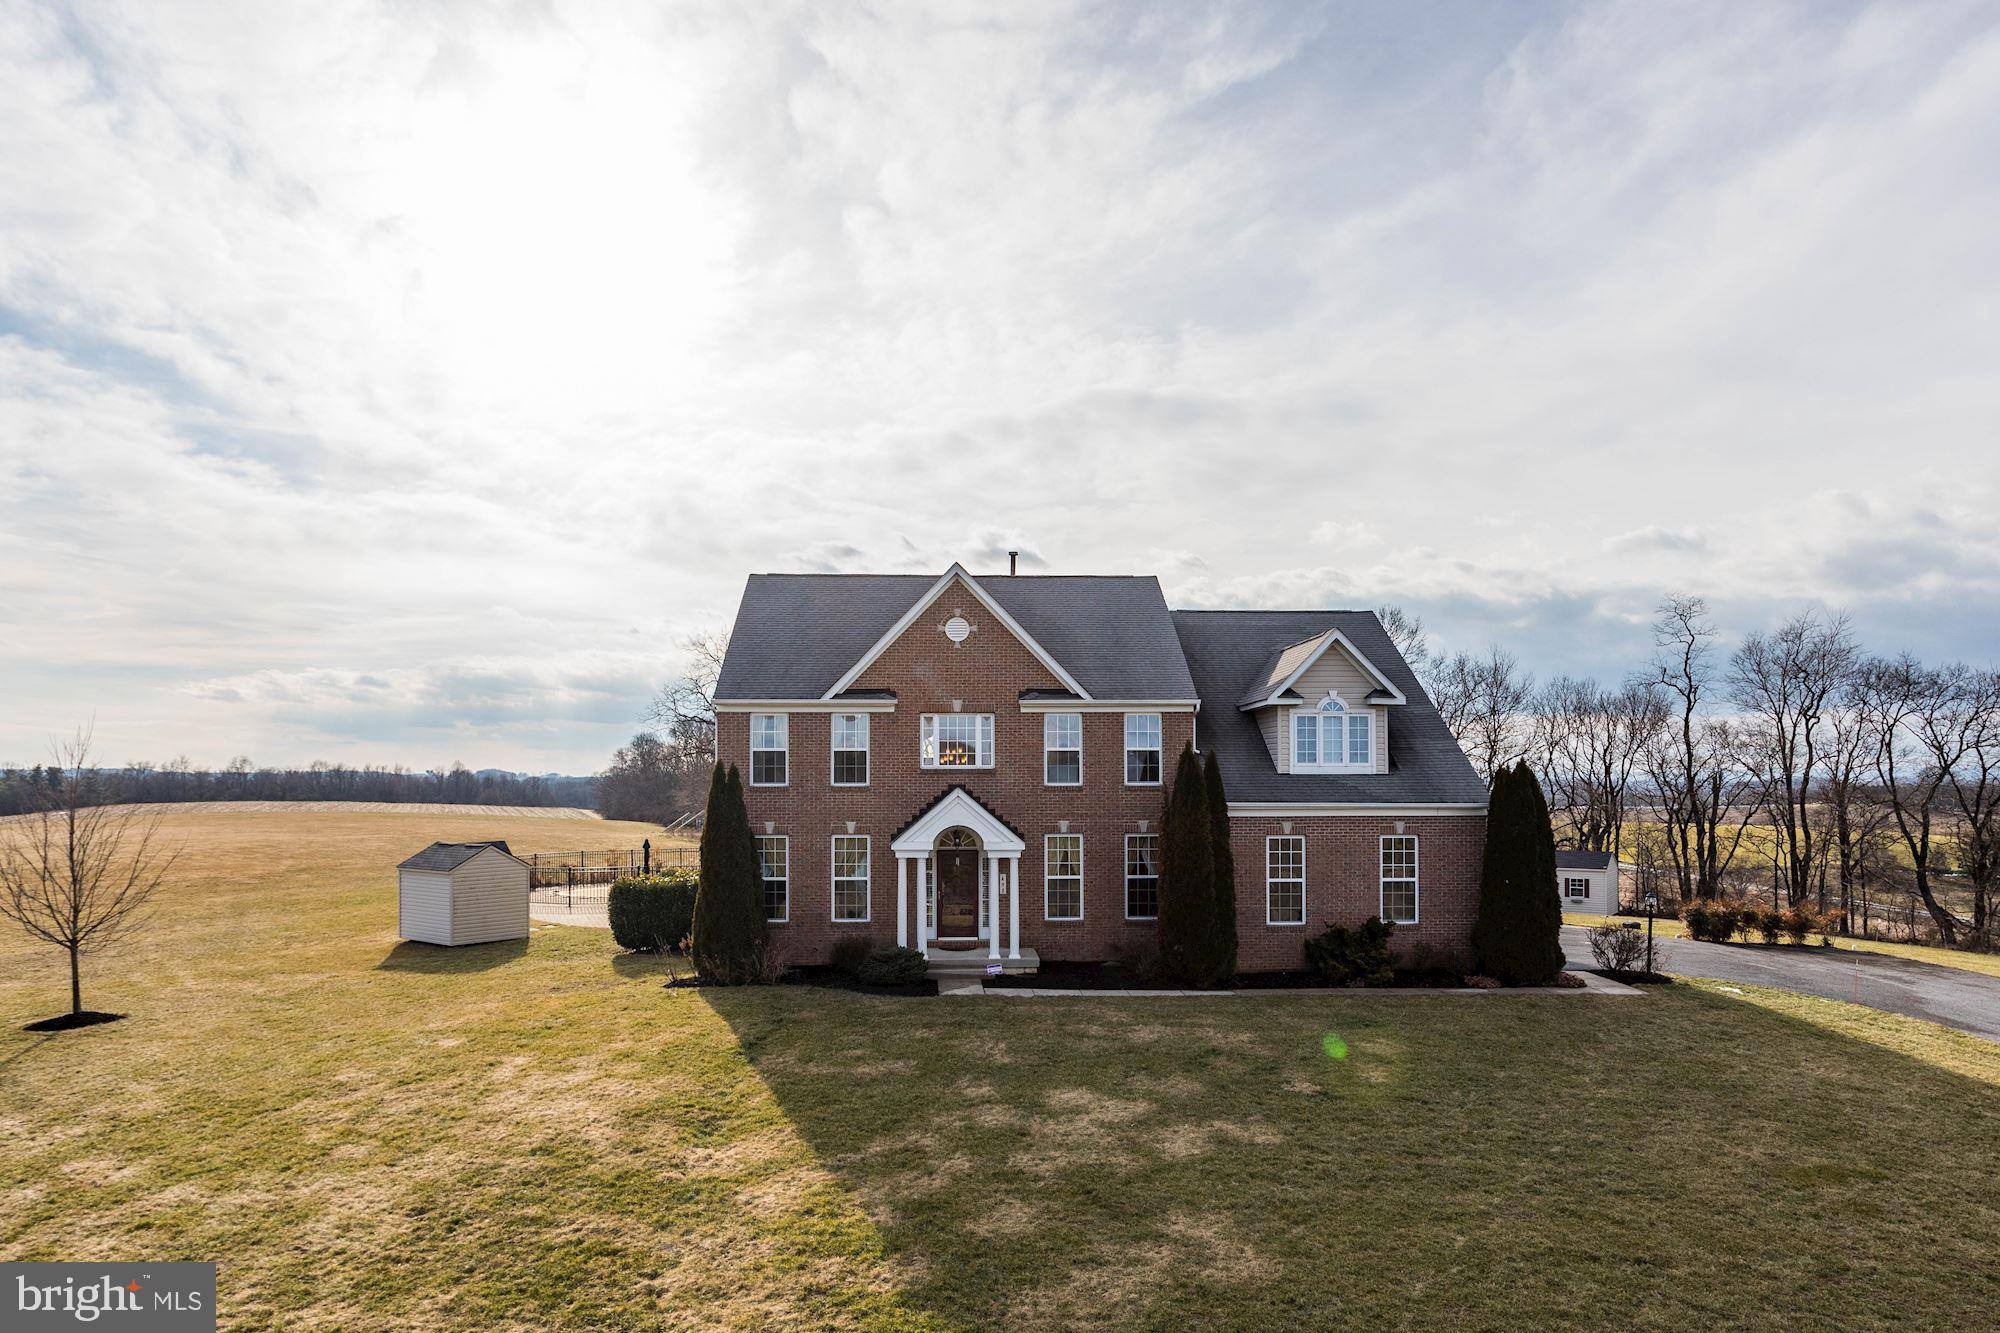 498 SUMMIT VIEW DRIVE, WESTMINSTER, MD 21157